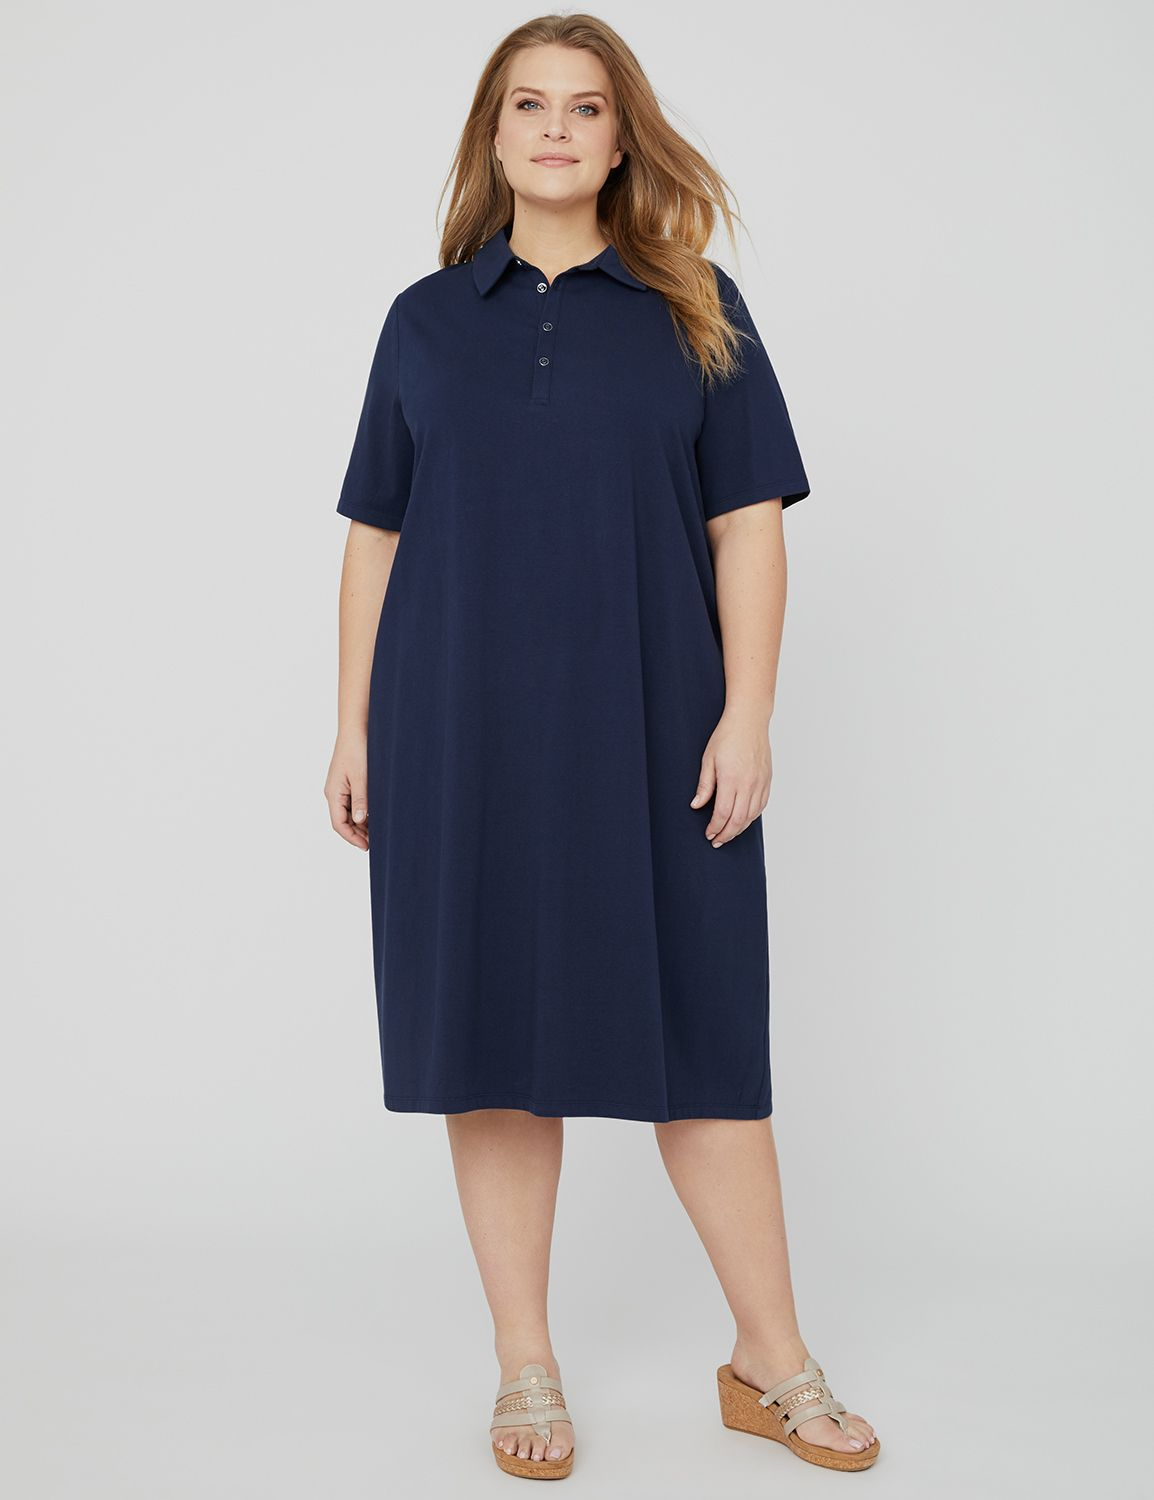 Suprema Polo Dress 1090899 Suprema Polo Dress MP-300105766